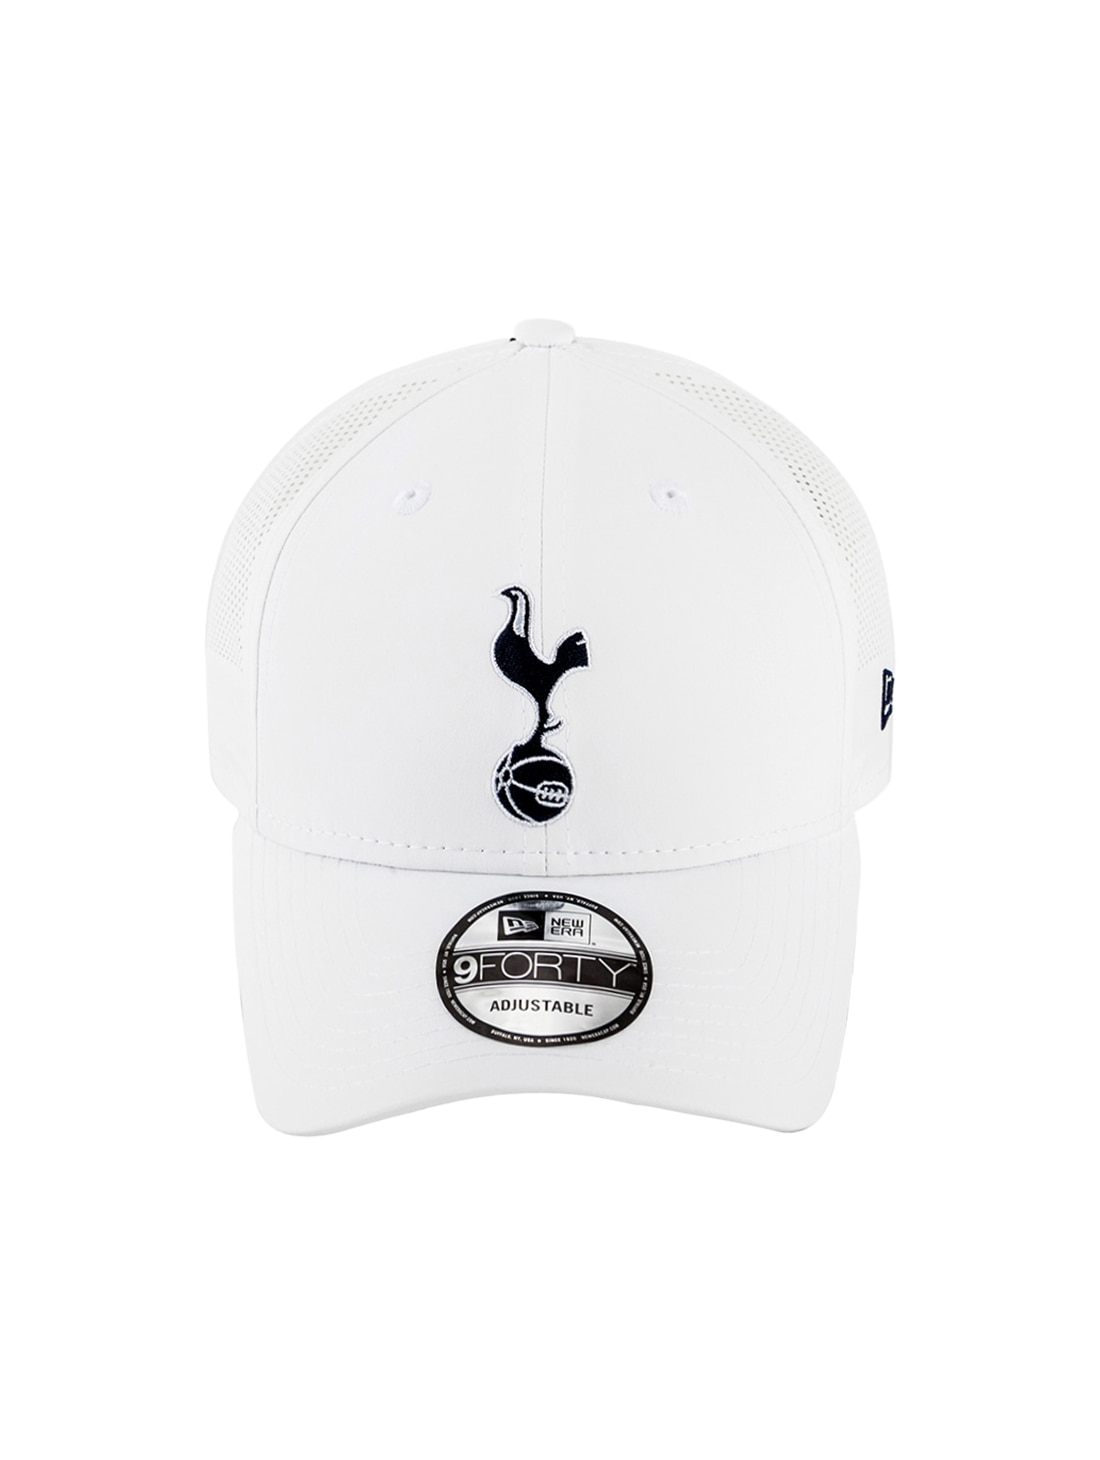 GOALSTUDIO TOTTENHAM PERFORATED MESH BALL CAP - WHITE